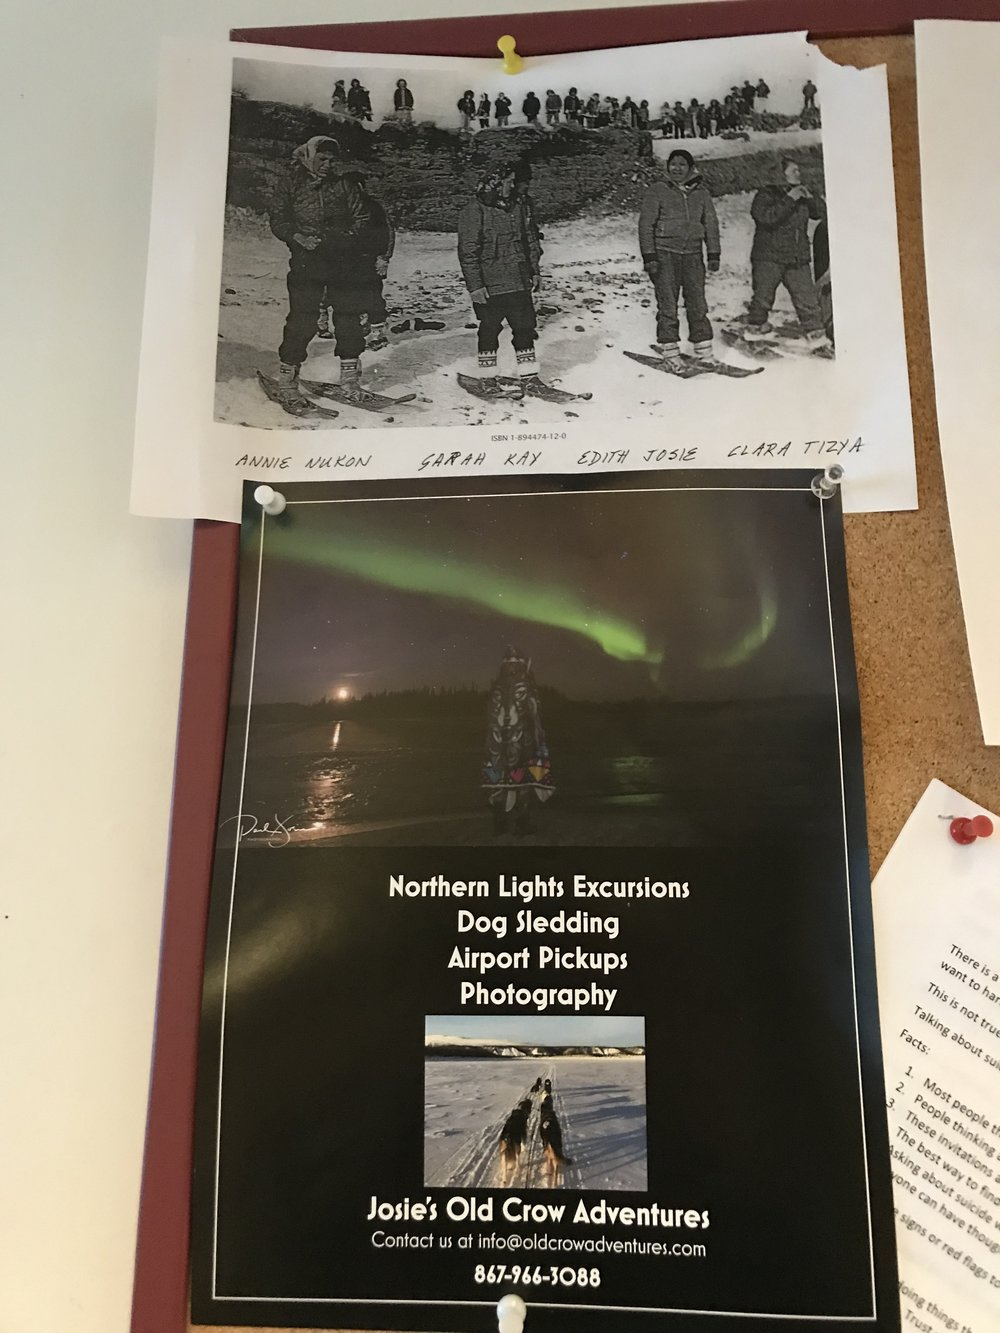 Paul's advertisement plus an archival picture of Gwich'in women ready for a snowshoe race